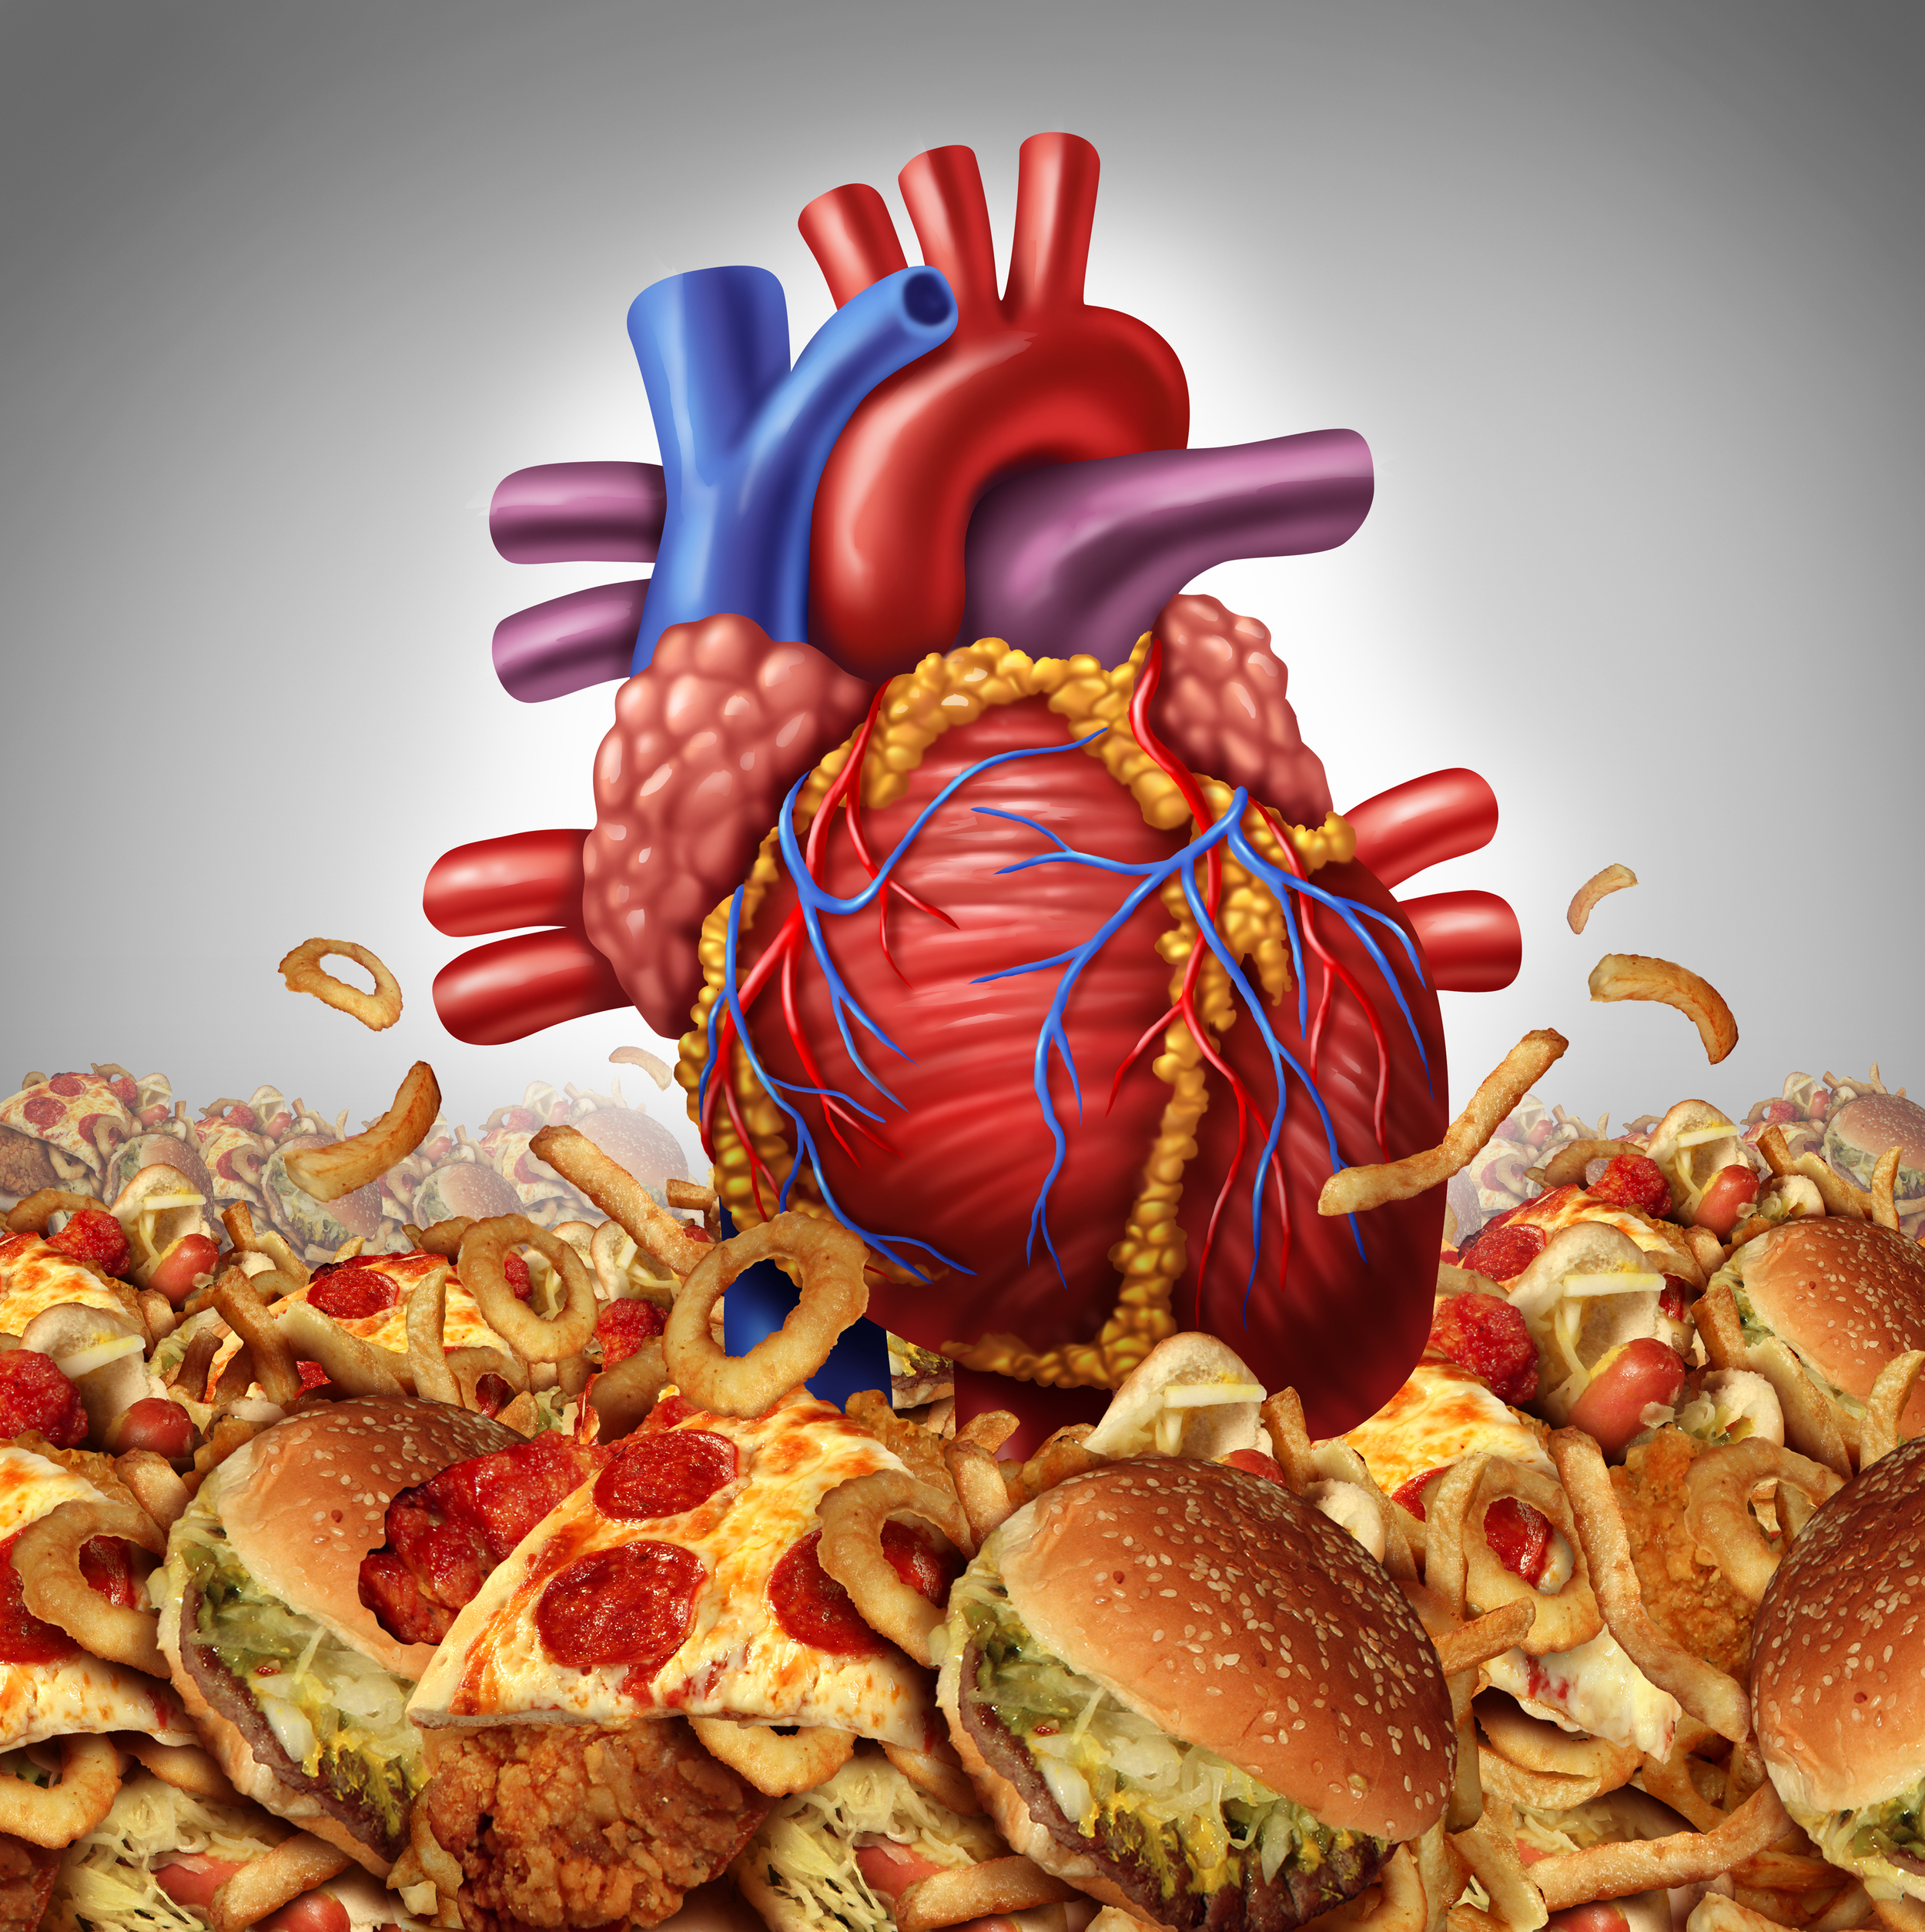 Animal products inflame and clog arteries